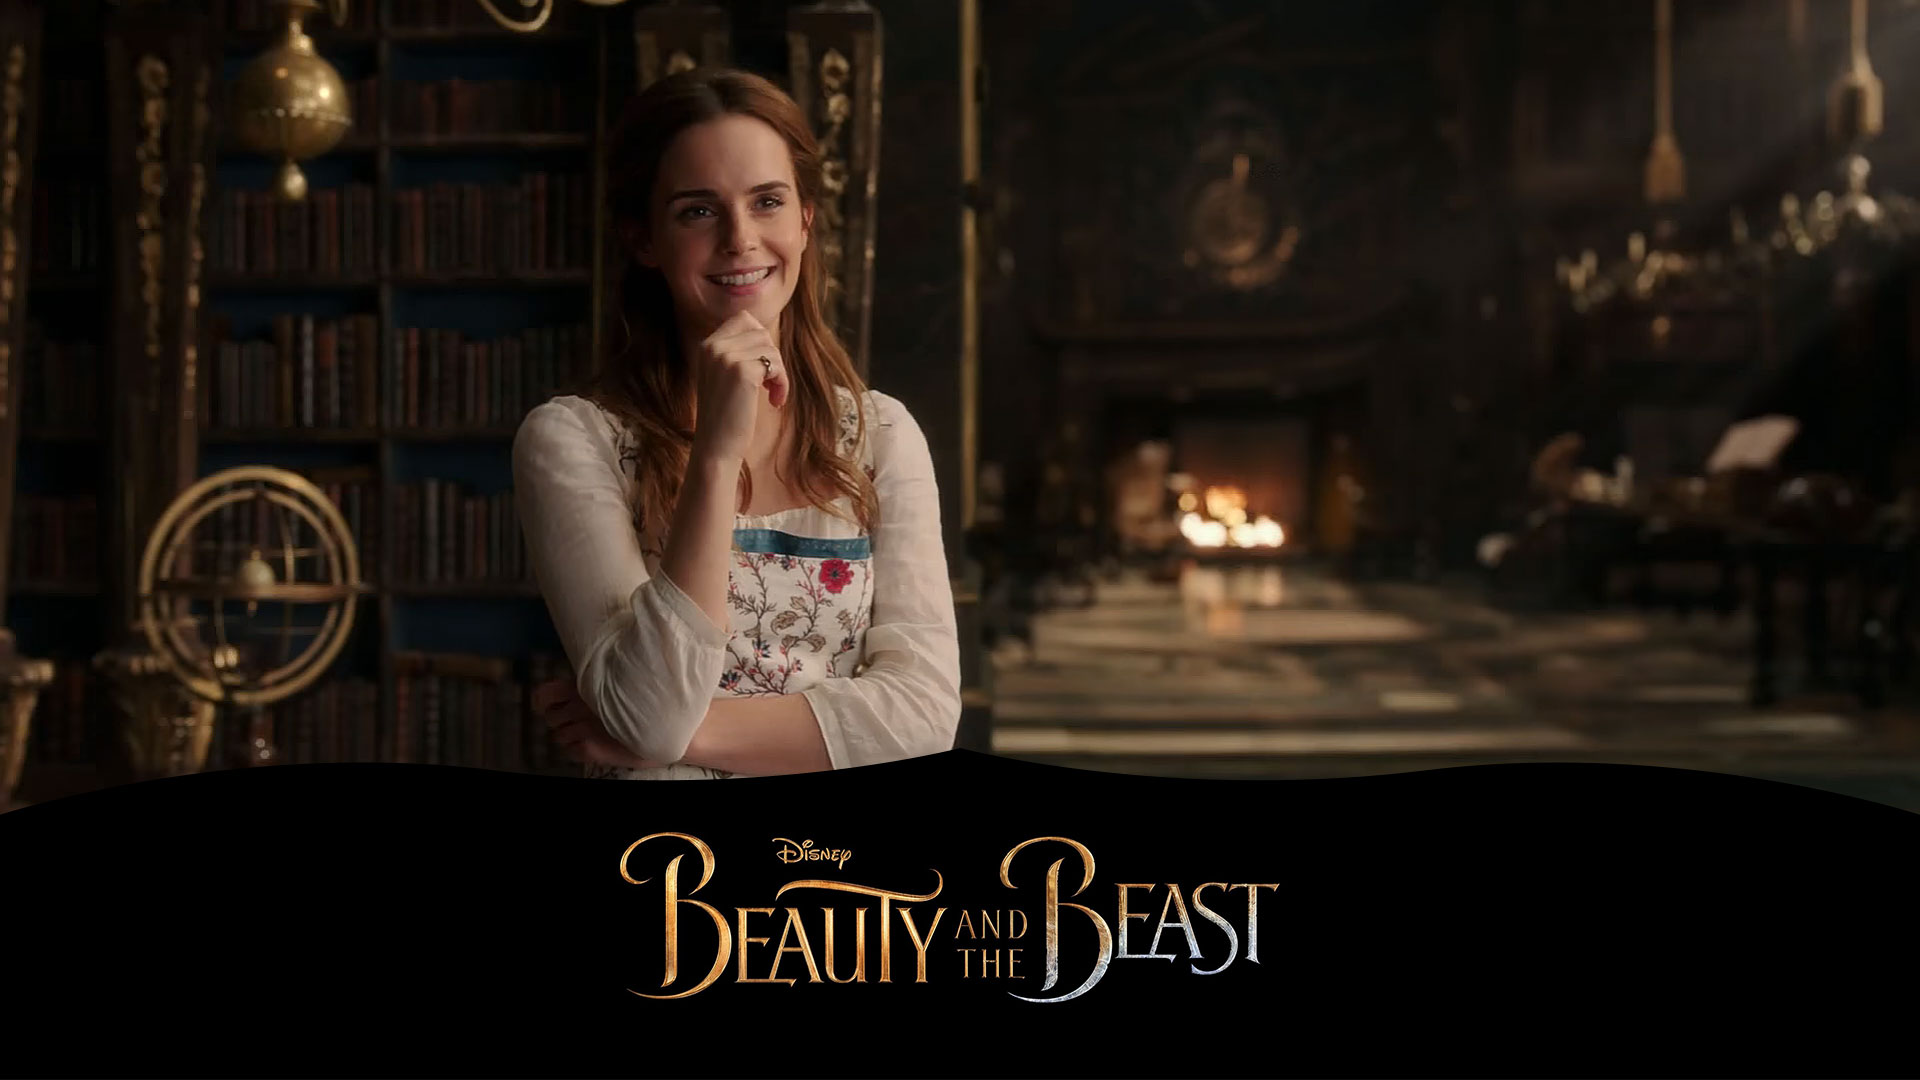 Beauty And The Beast Movies Of 2017 Wallpaper 40321279